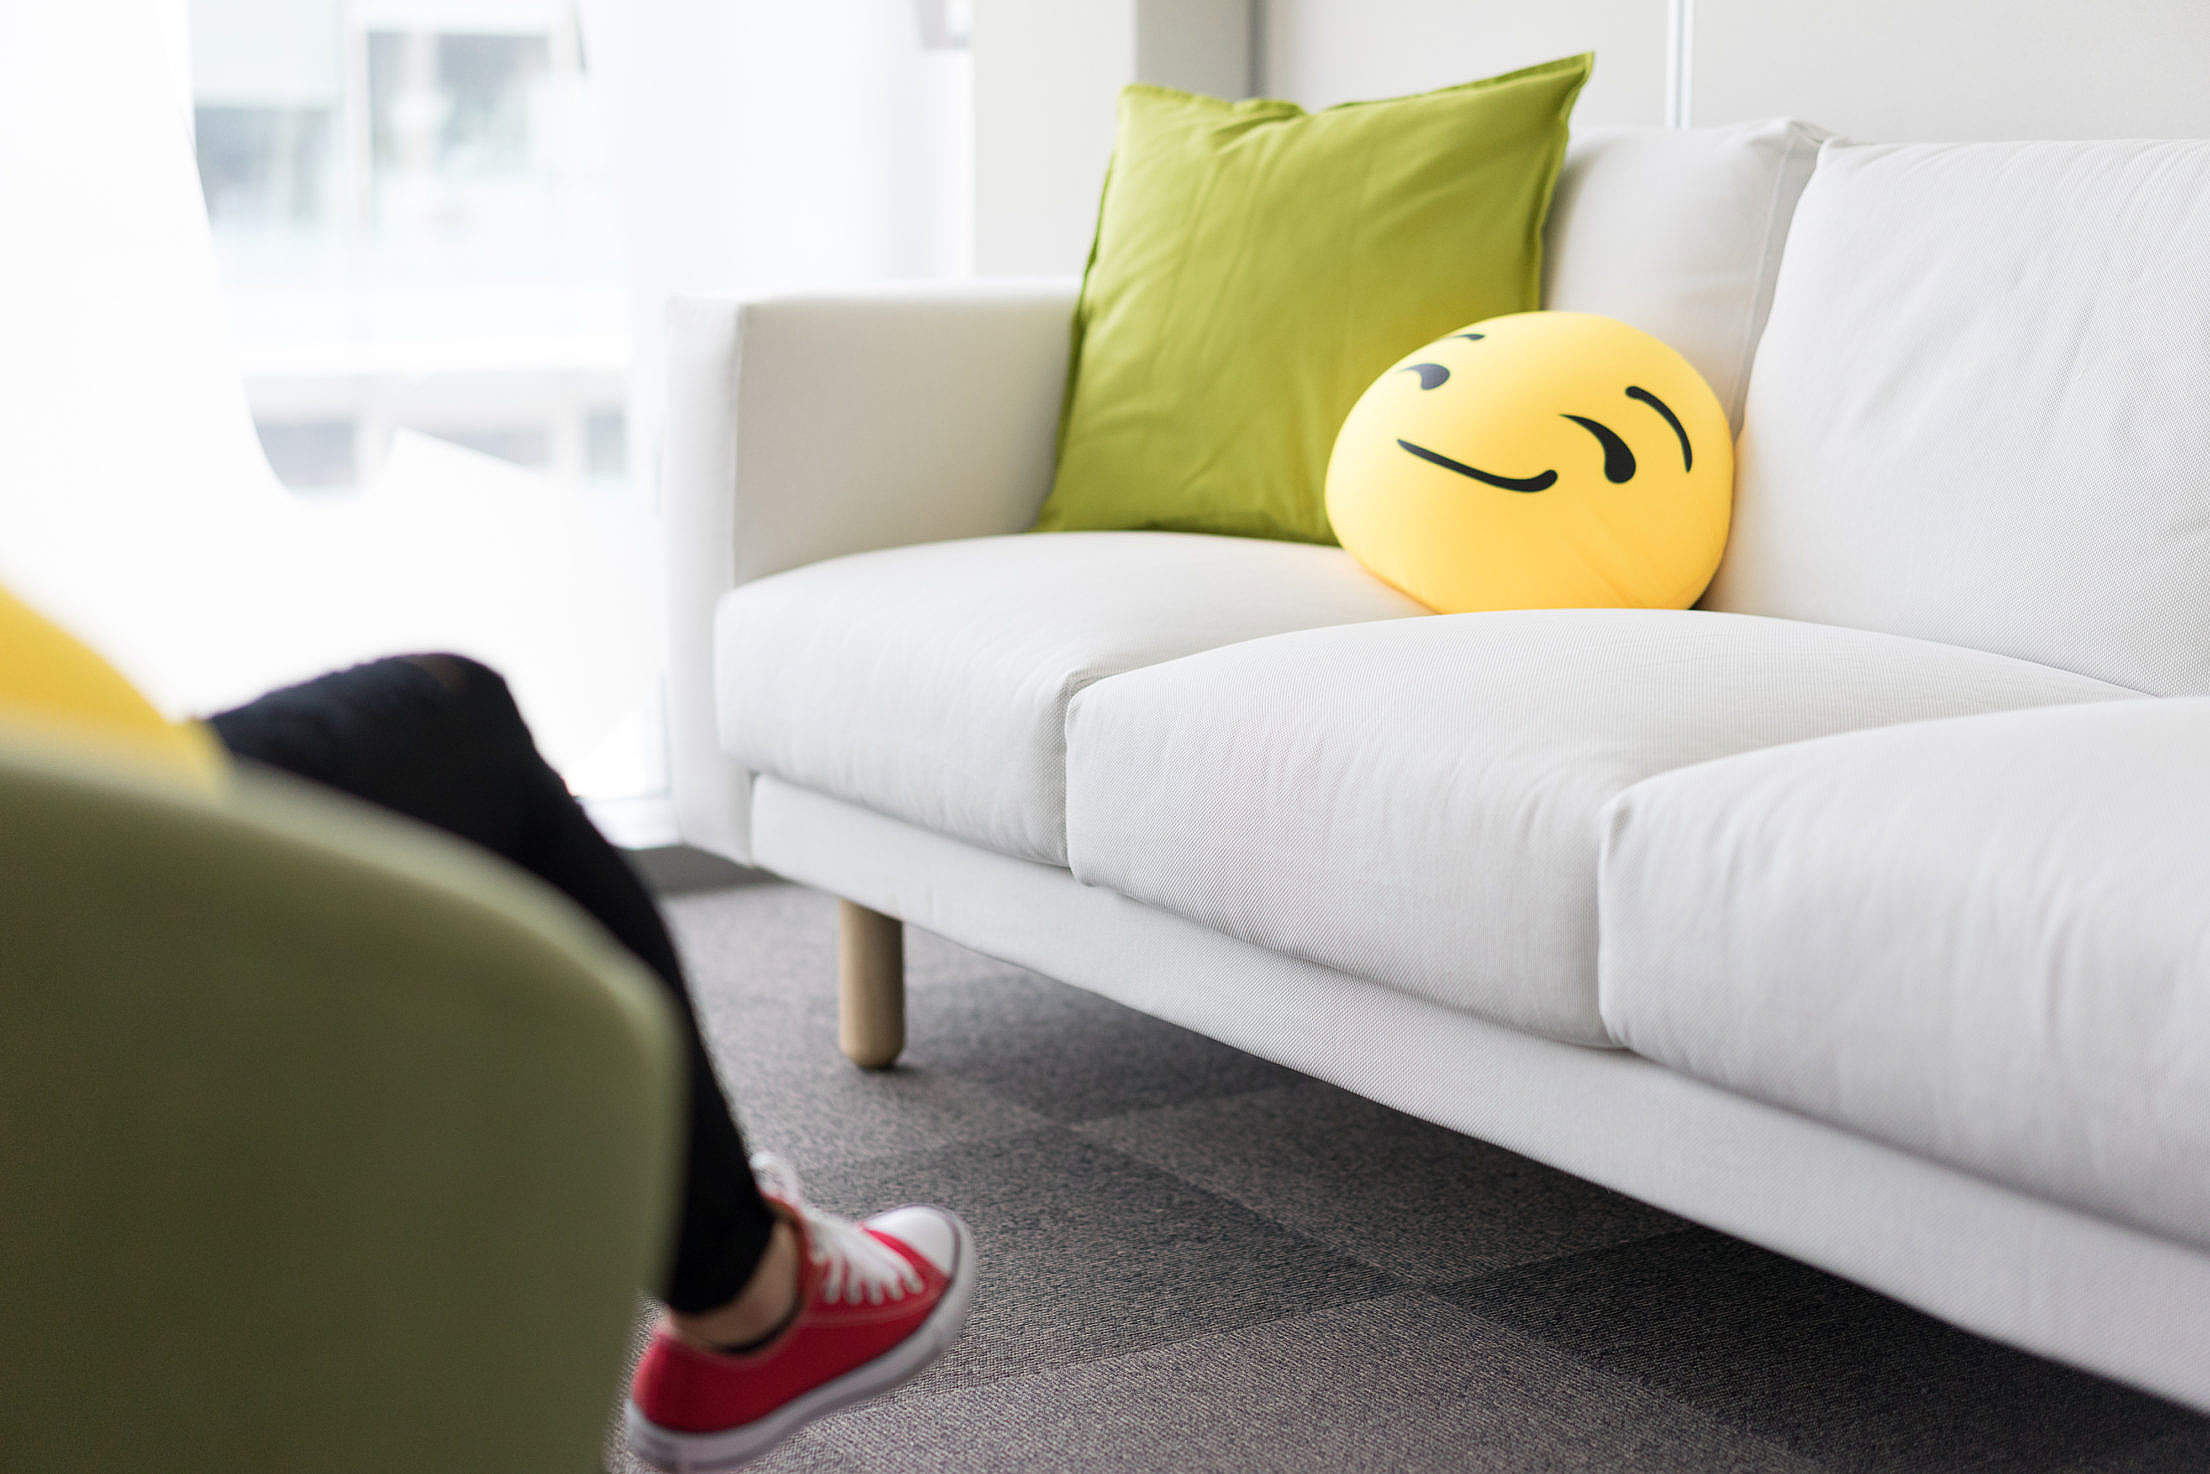 Colorful and Funny Pillows on Sofa in Modern Startup Office Free Stock Photo